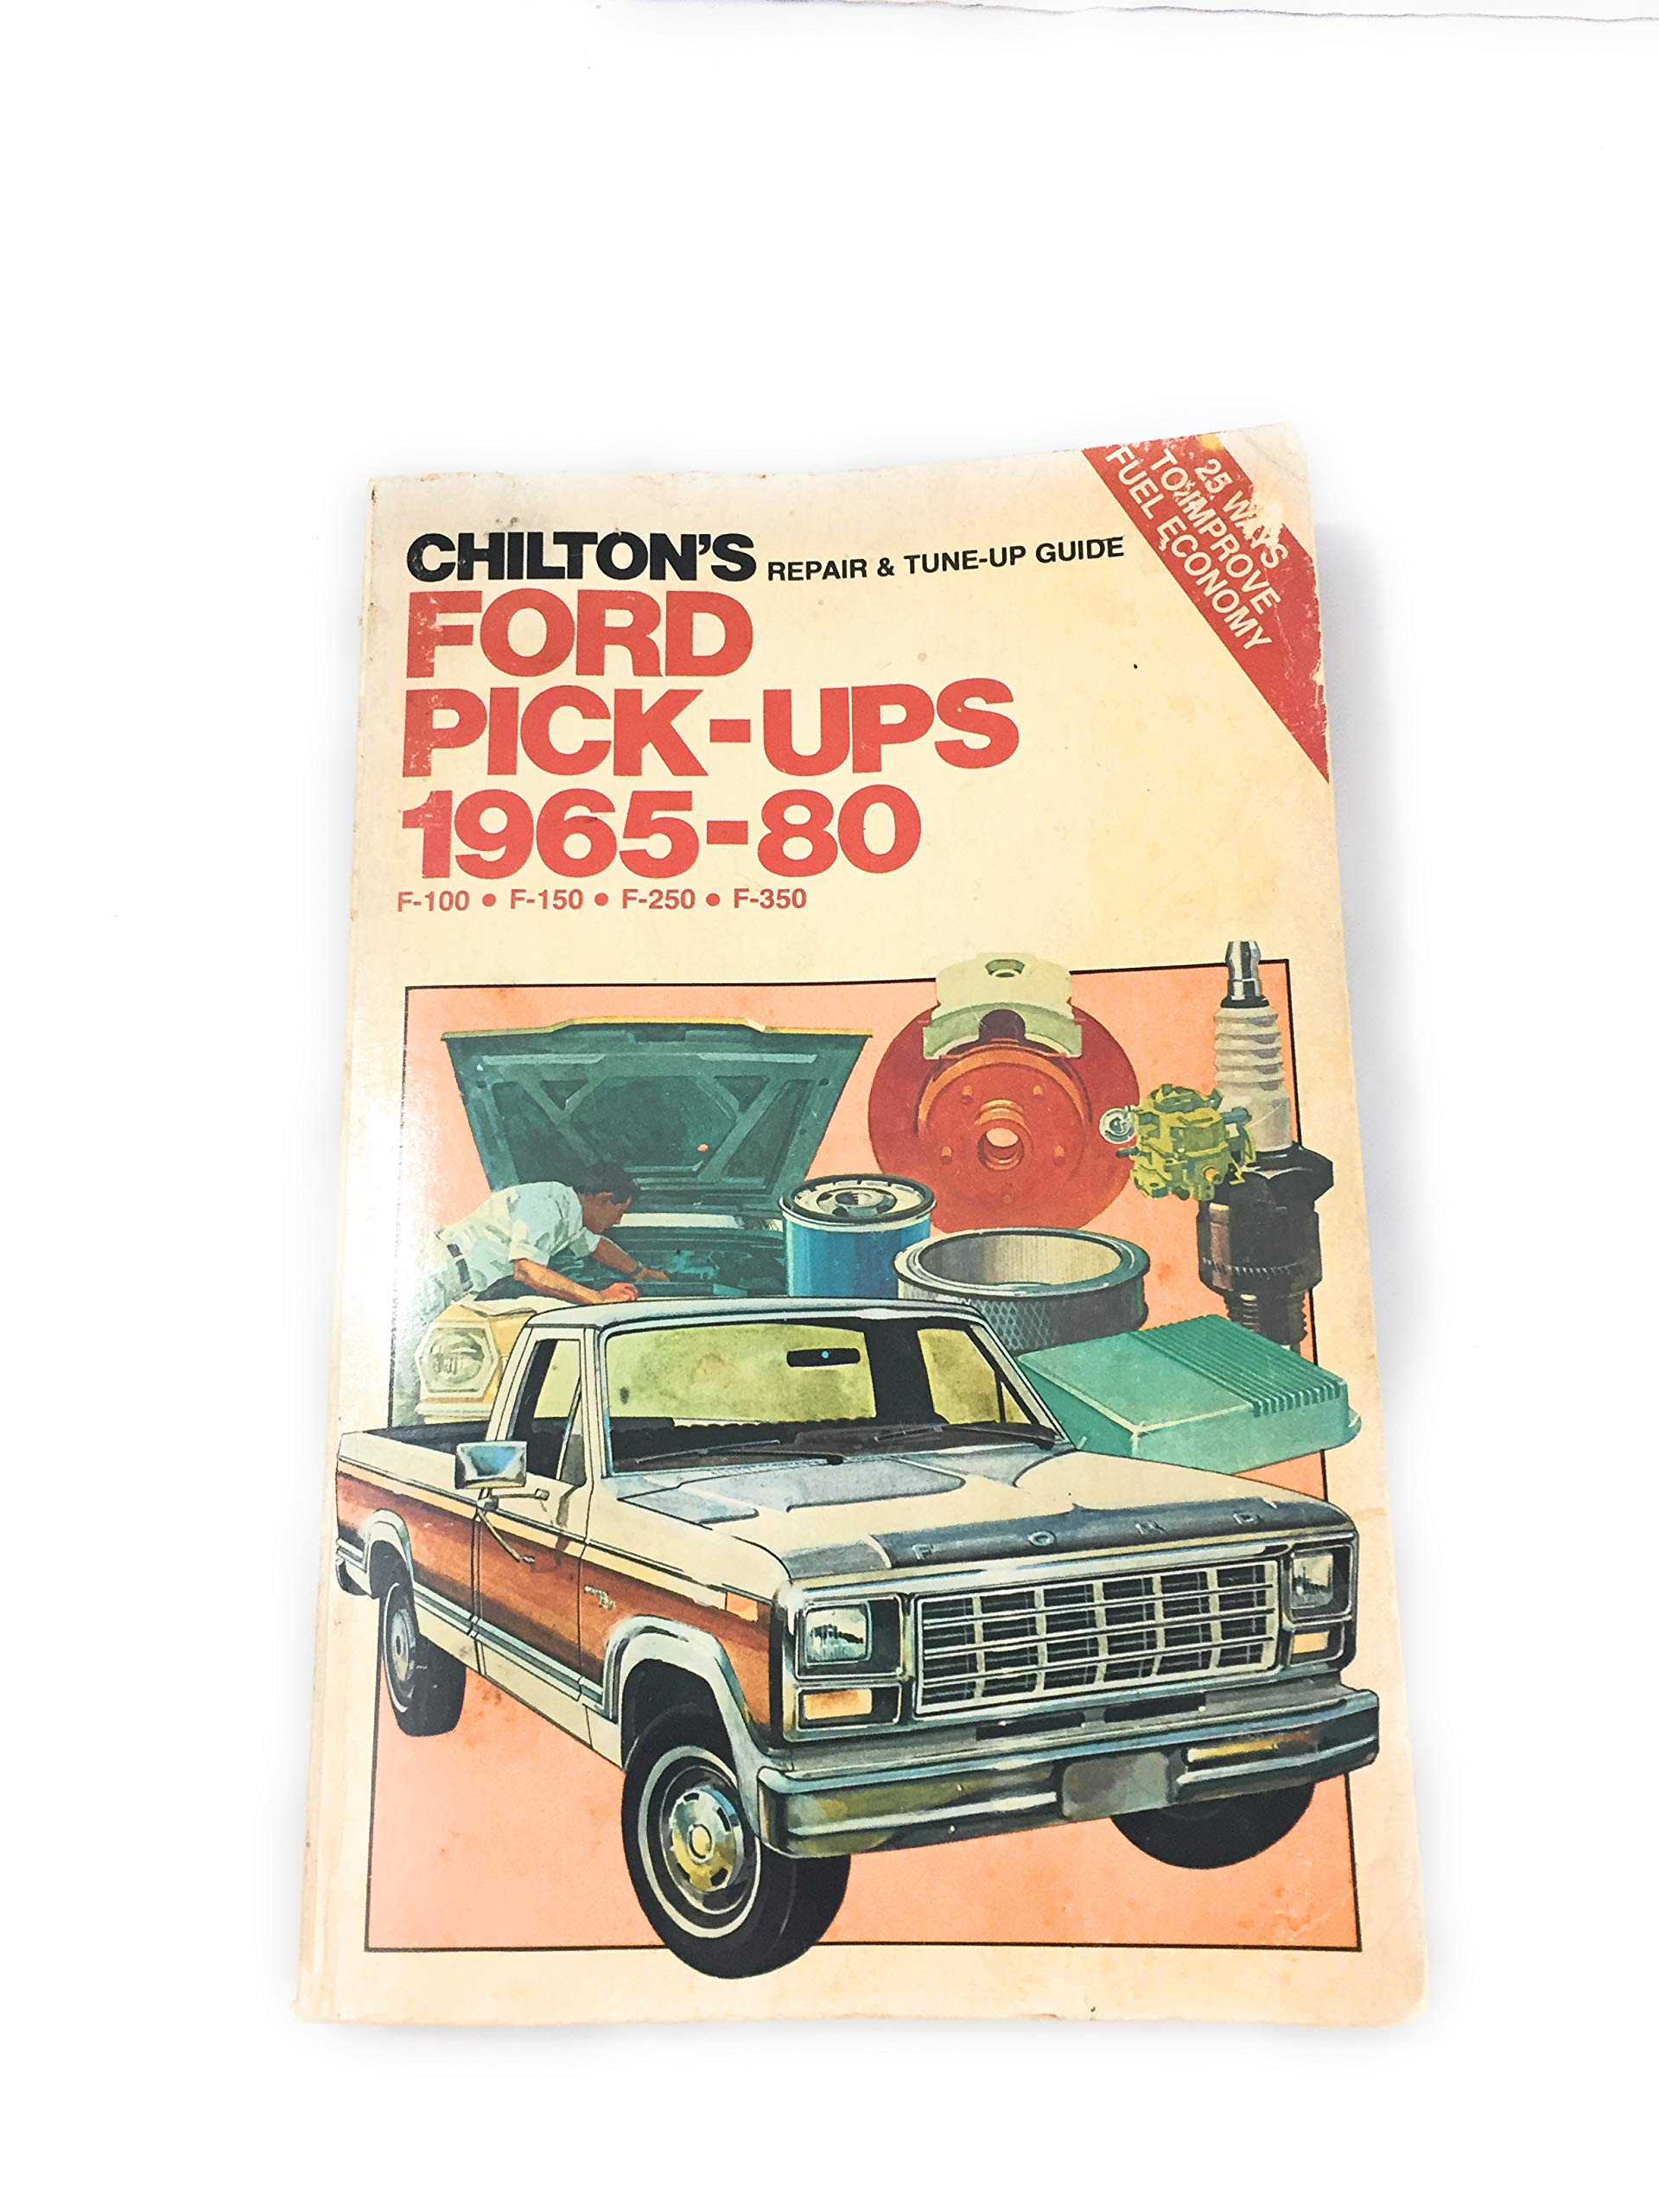 Chilton's Repair and Tune-Up Guide, Ford Pick-Ups, 1965-80: F-100, F-150,  F-250, F-350: Kerry A. Freeman: 9780801969133: Amazon.com: Books